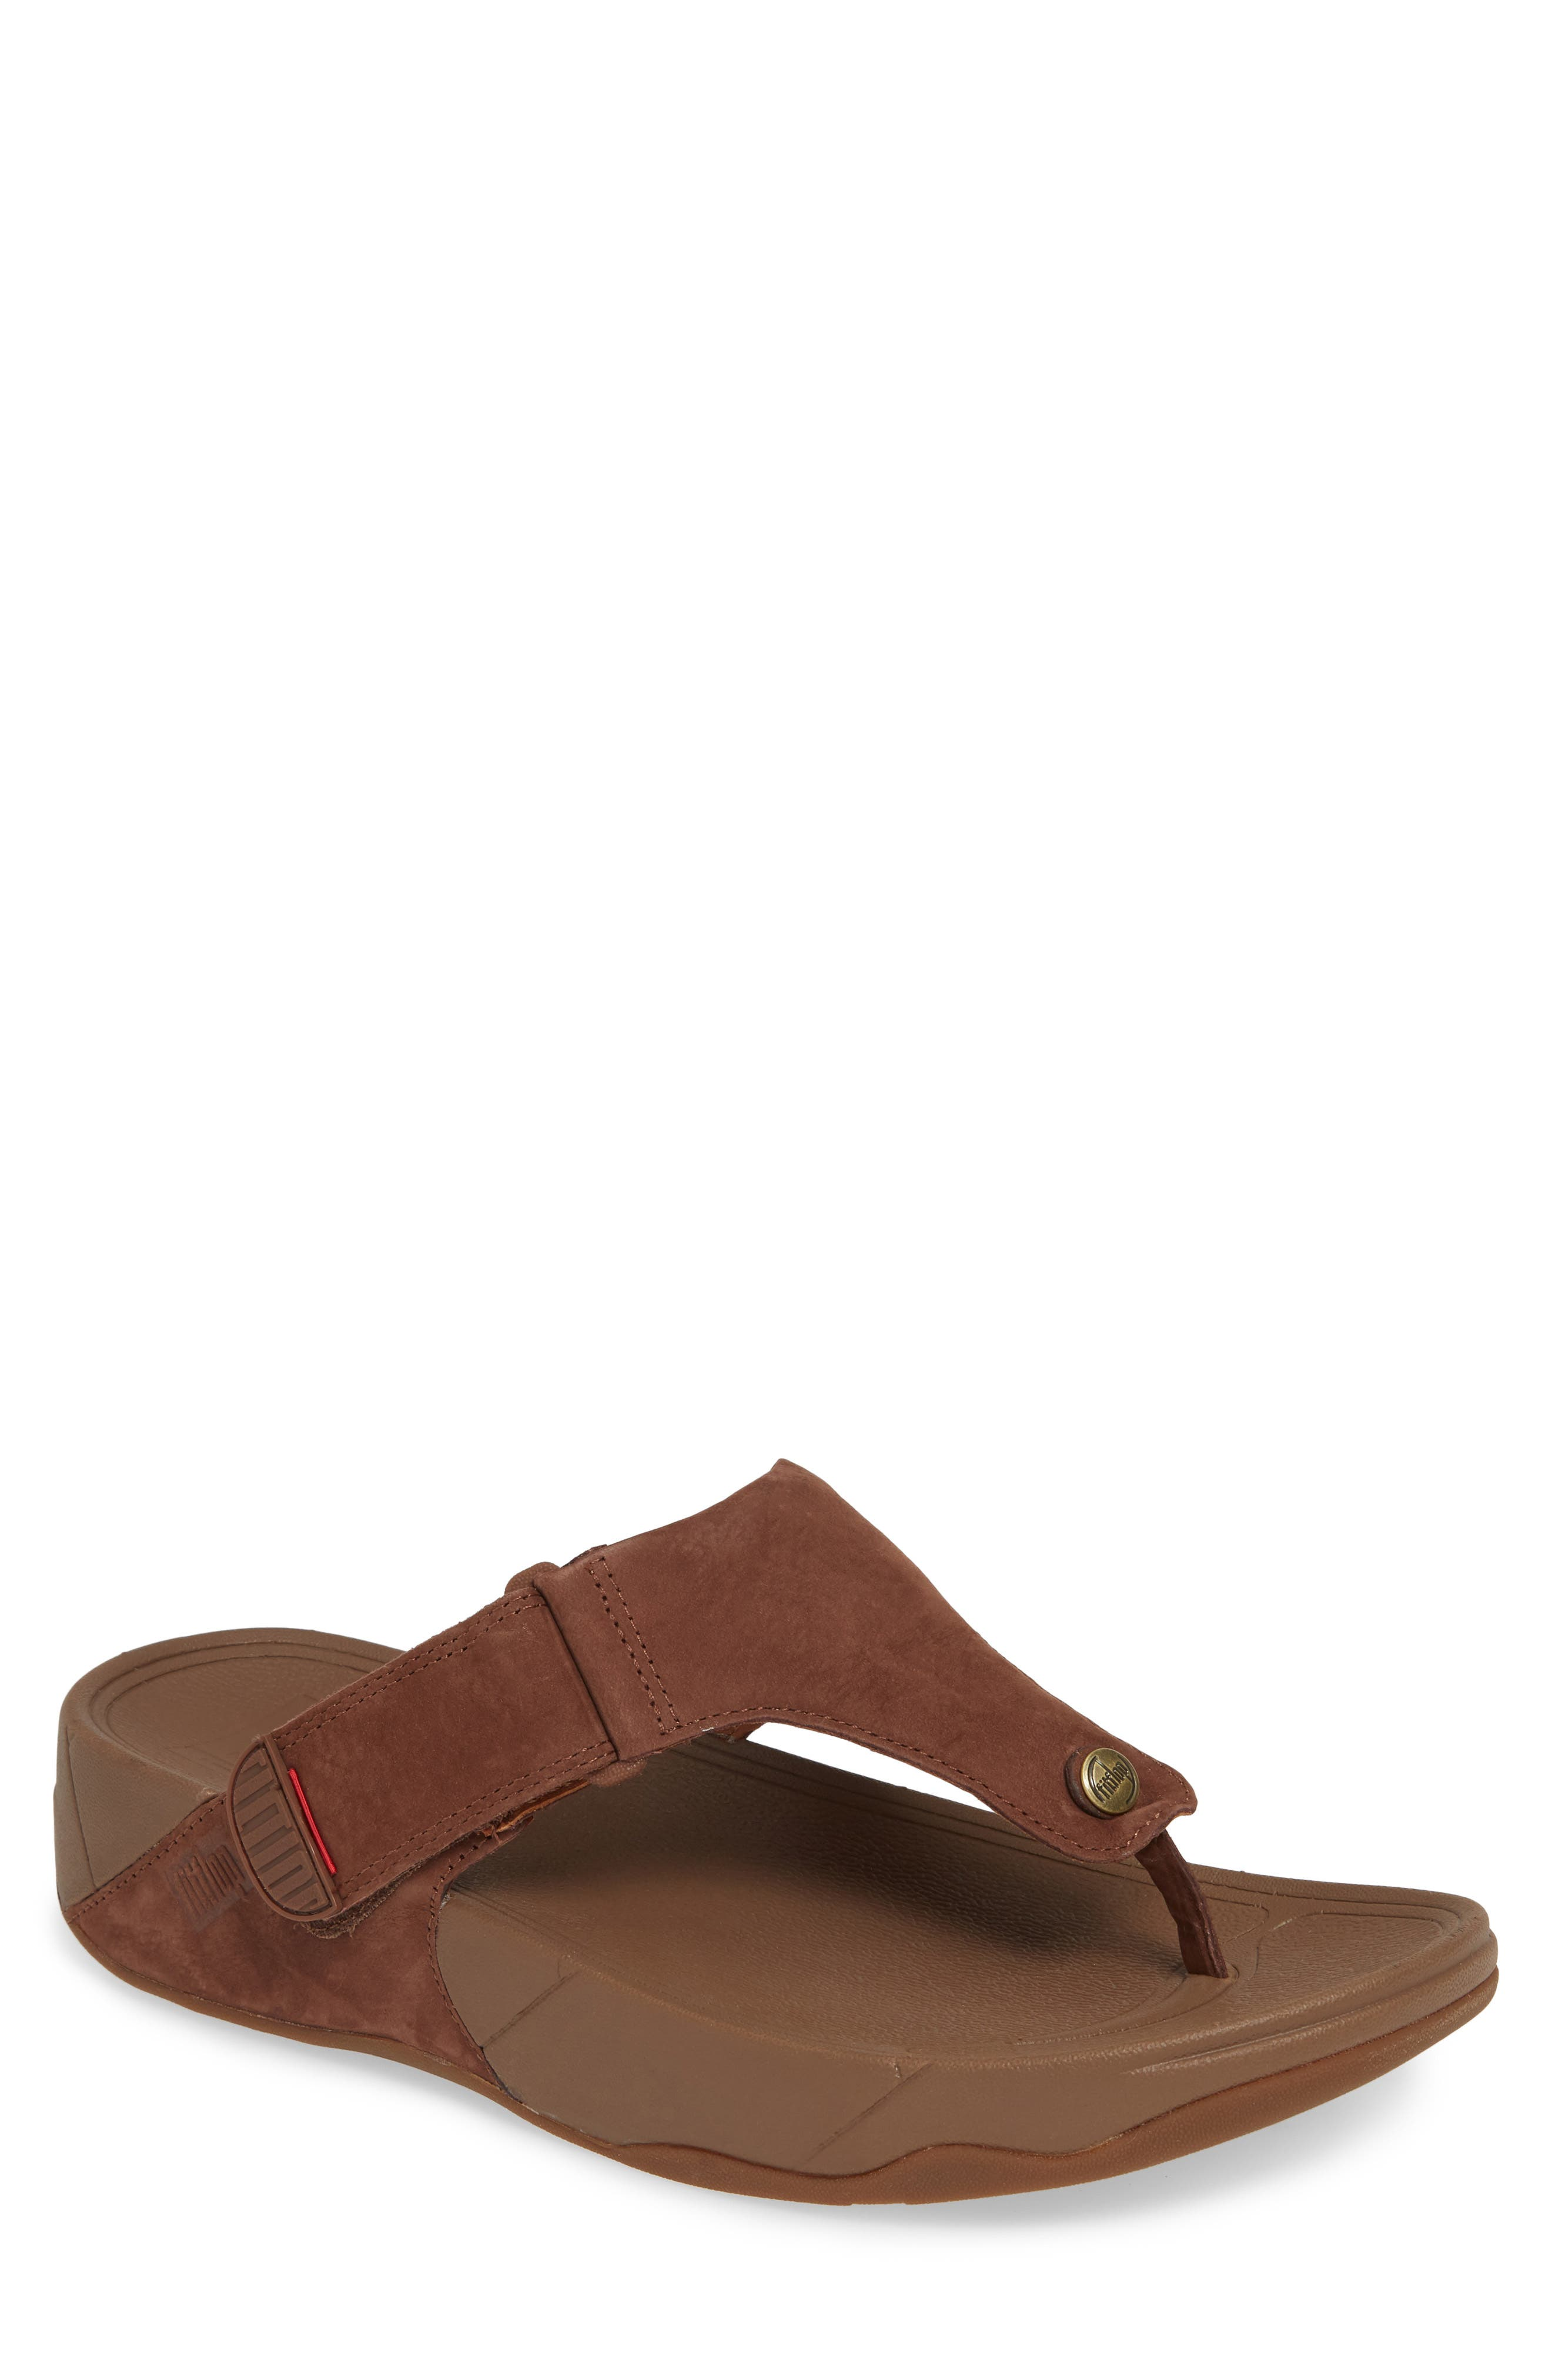 cce7ae659 FitFlop for Men